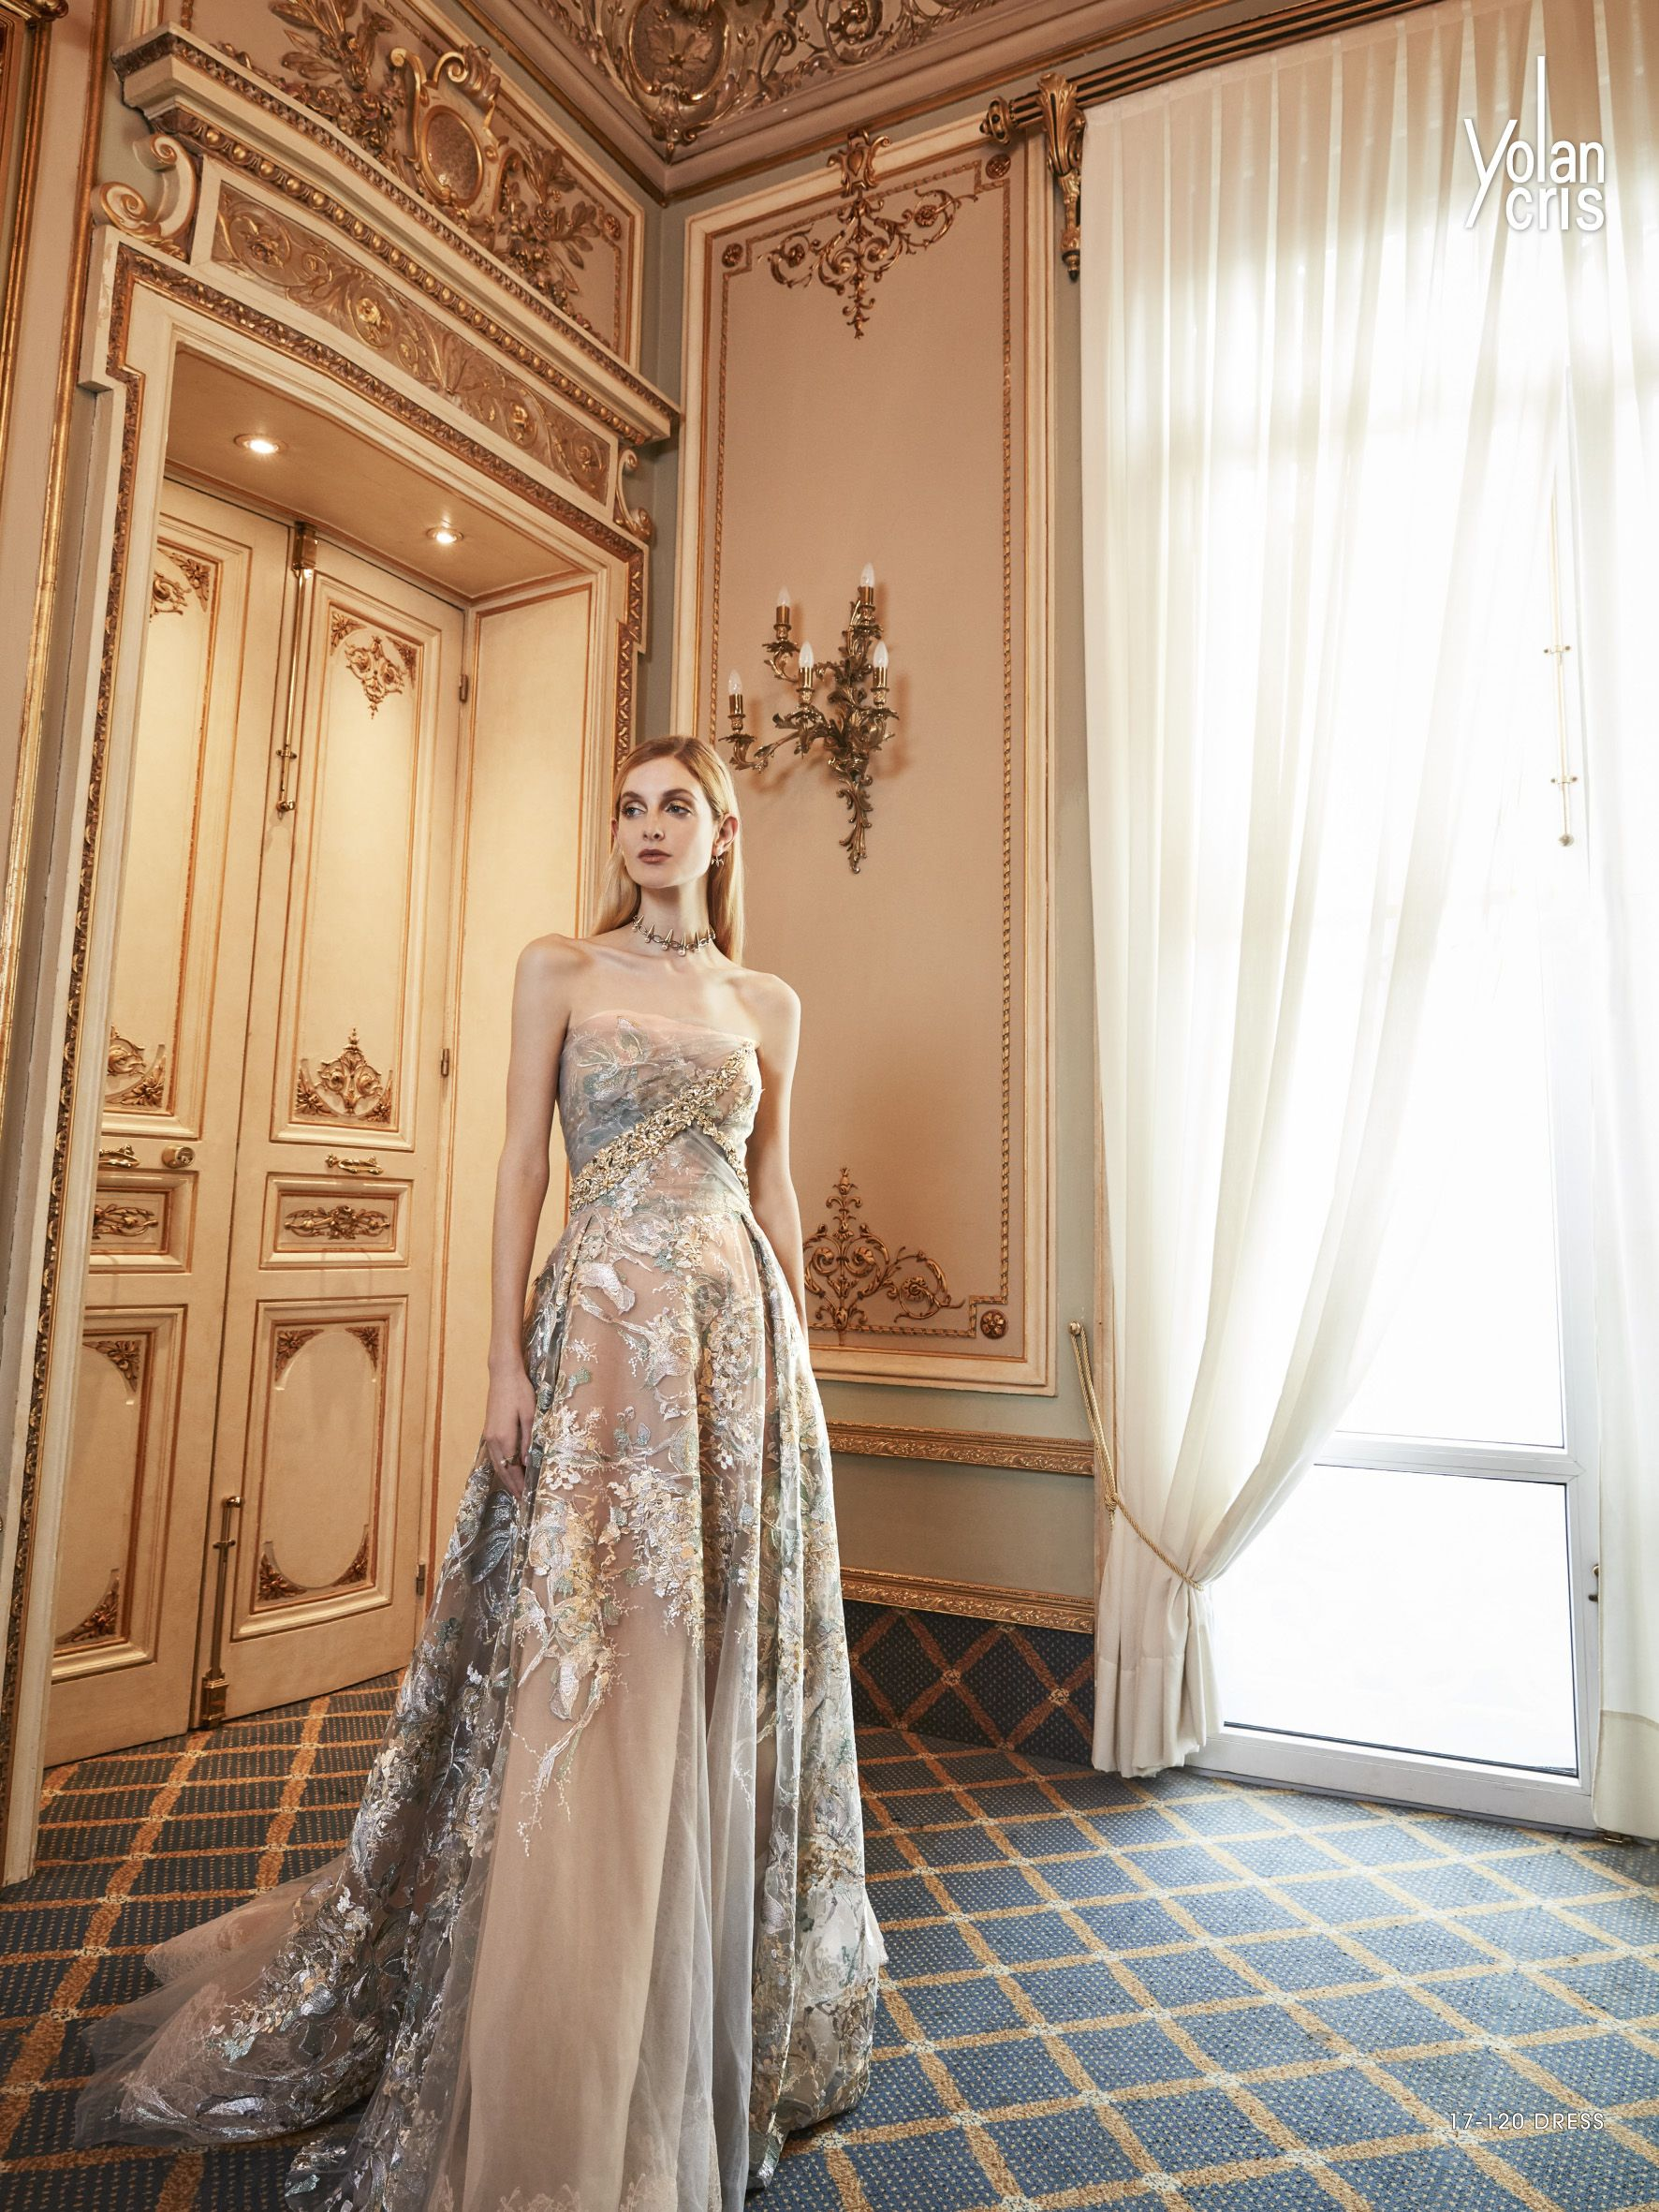 Yolancris Evening Dresses Available At Esposa Prive Stores In Dubai And Downtown Beirut Evening Dresses Couture Evening Dress Fancy Dresses